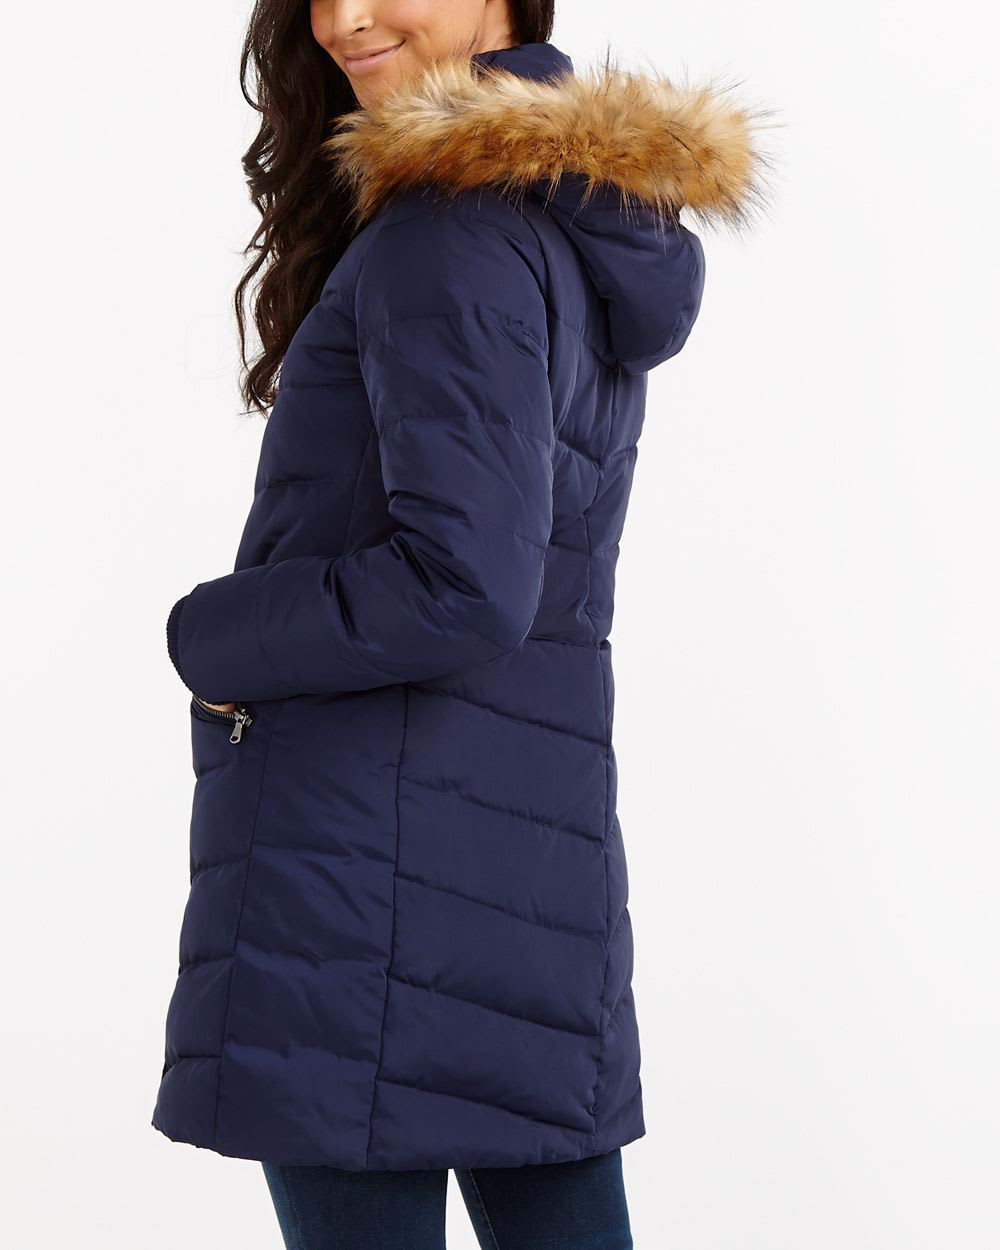 75836cd30 Removable Hood Down Winter Coat